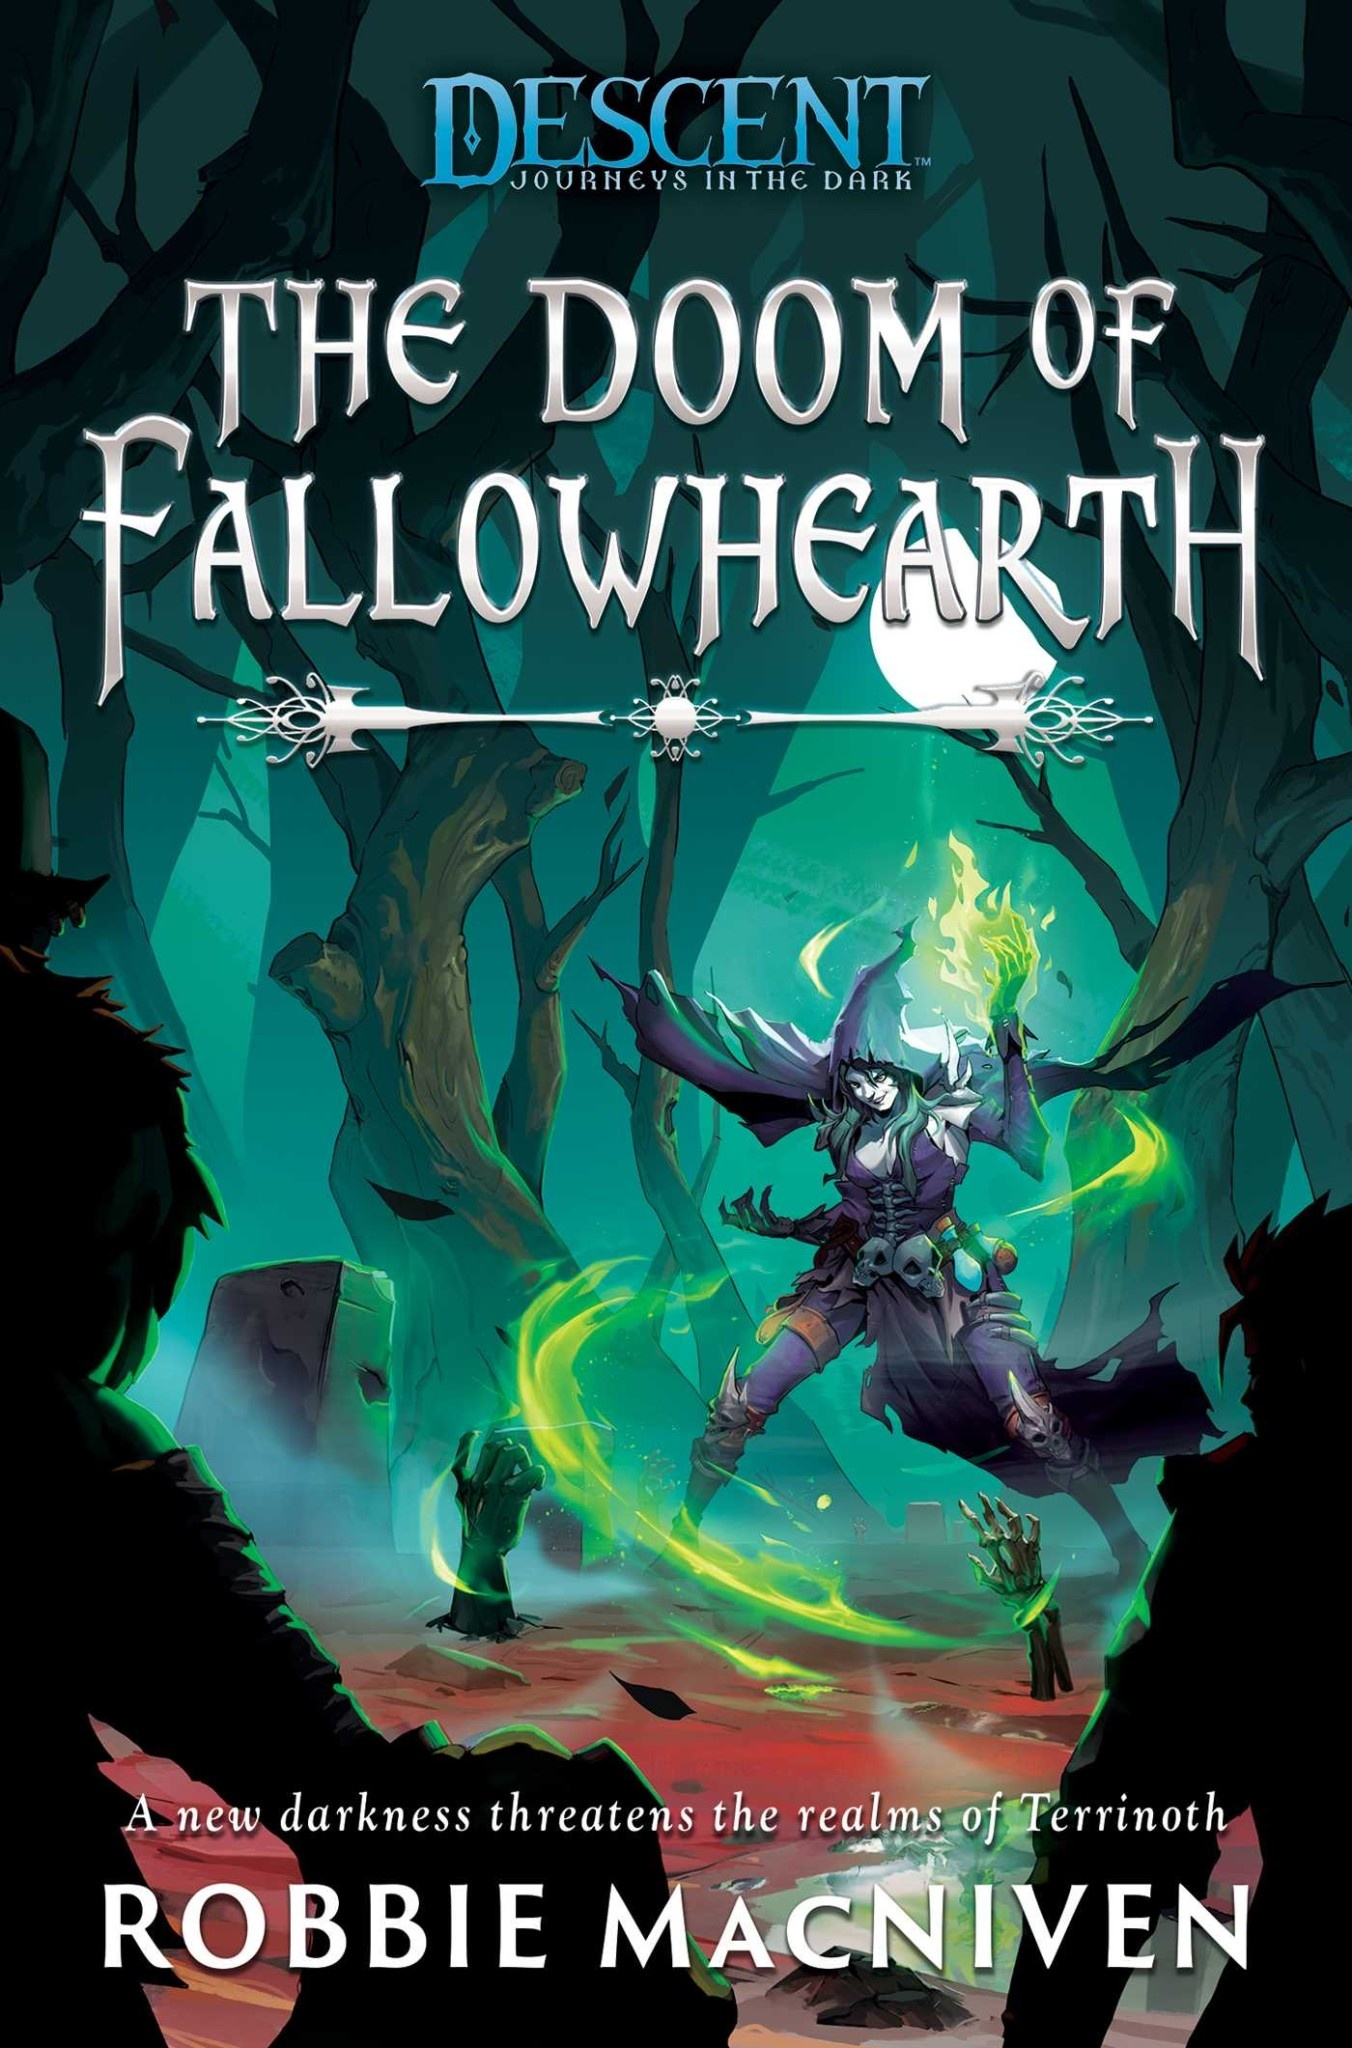 Aconytebooks Descent Journeys in the Dark NOVEL: The Doom of Fallowhearth